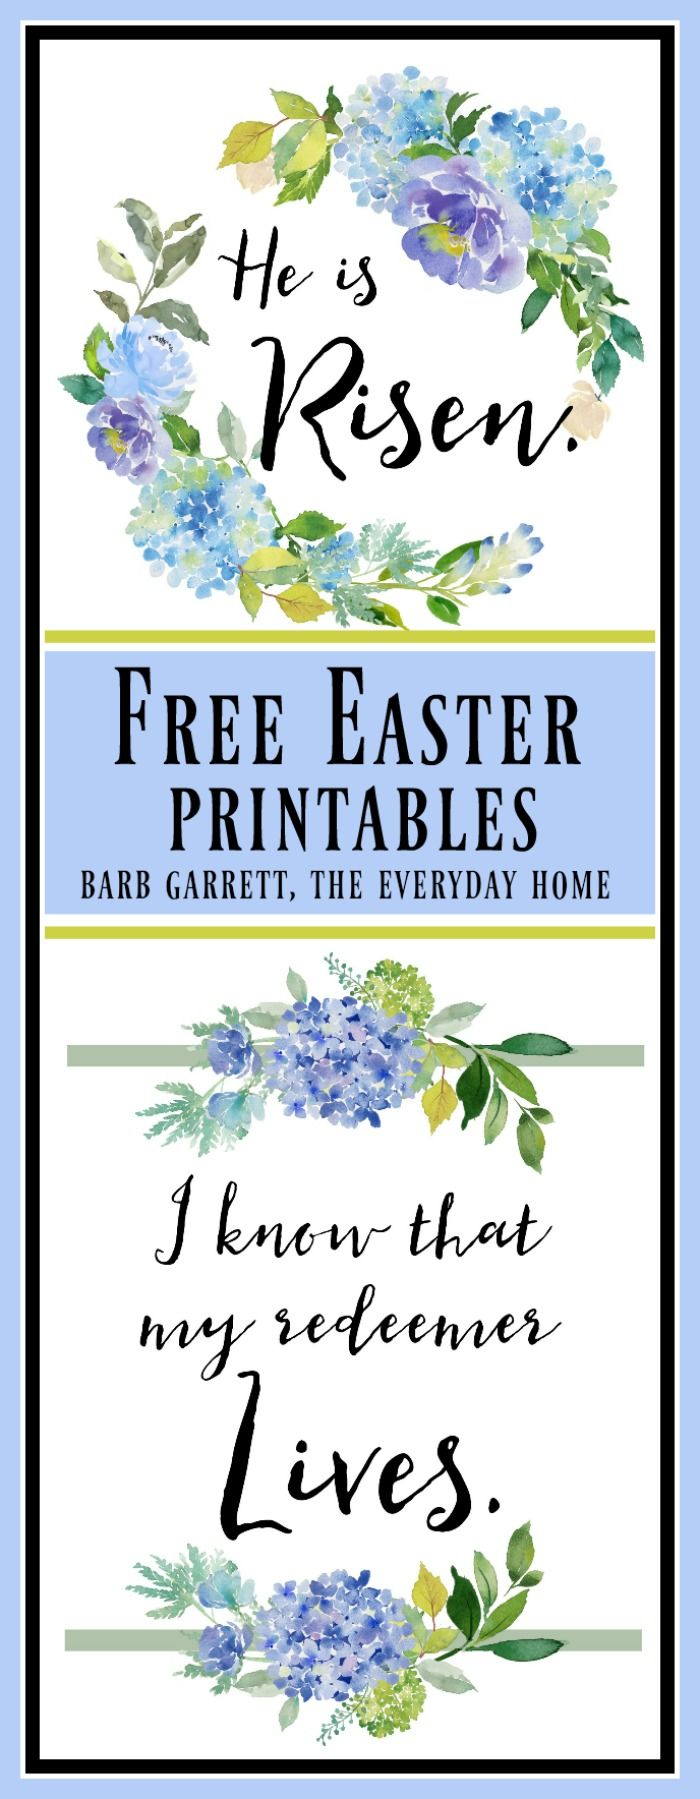 The Everyday Home offers more of her uniquely designed printables which are free for your personal use: two Easter Printables and a calendar.